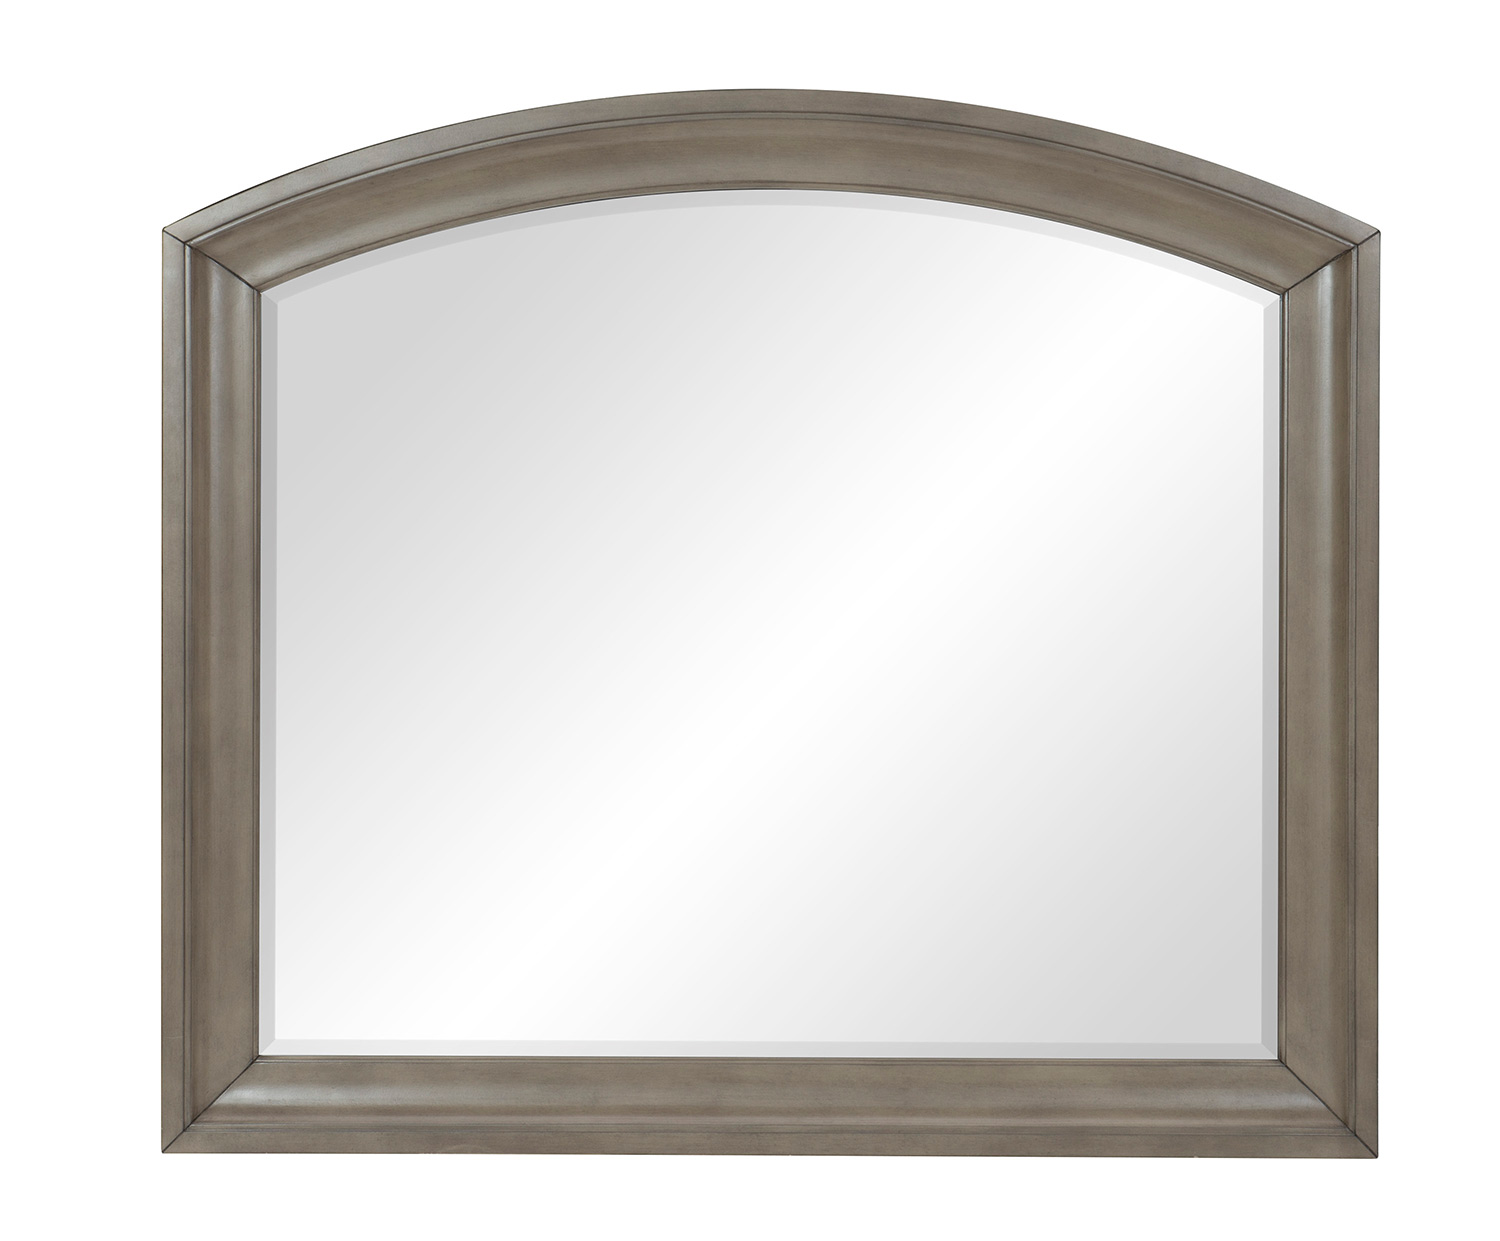 Homelegance Vermillion Mirror - Bisque Finish with Oak Veneer